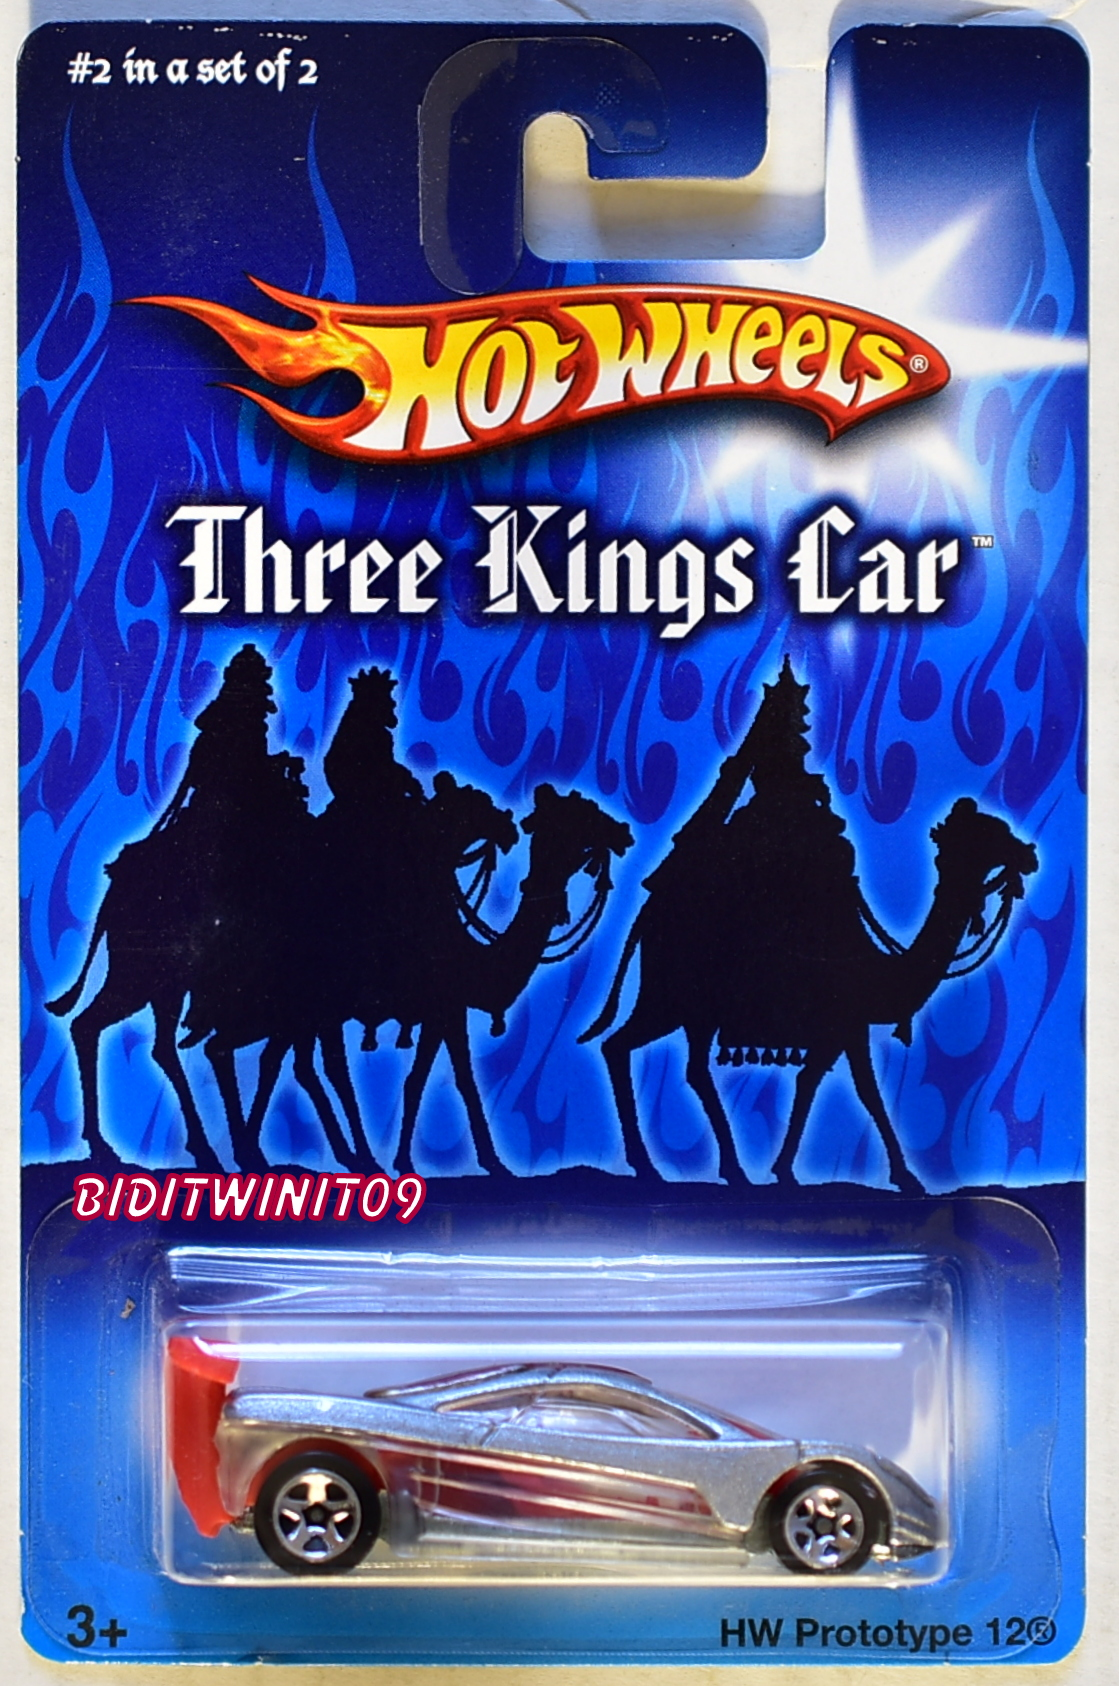 HOT WHEELS THREE KINGS CAR HW PROTOTYPE 12 #2 OF 2